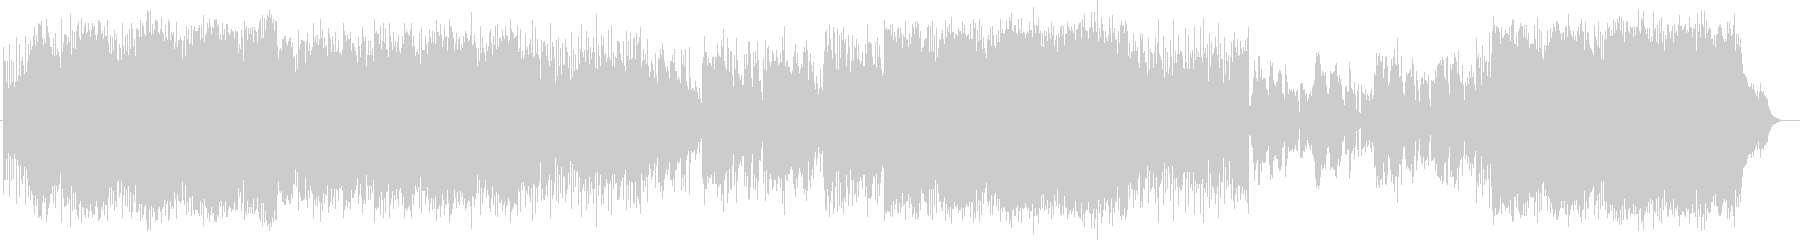 A song with danceable and melodious song's unreproduced waveform